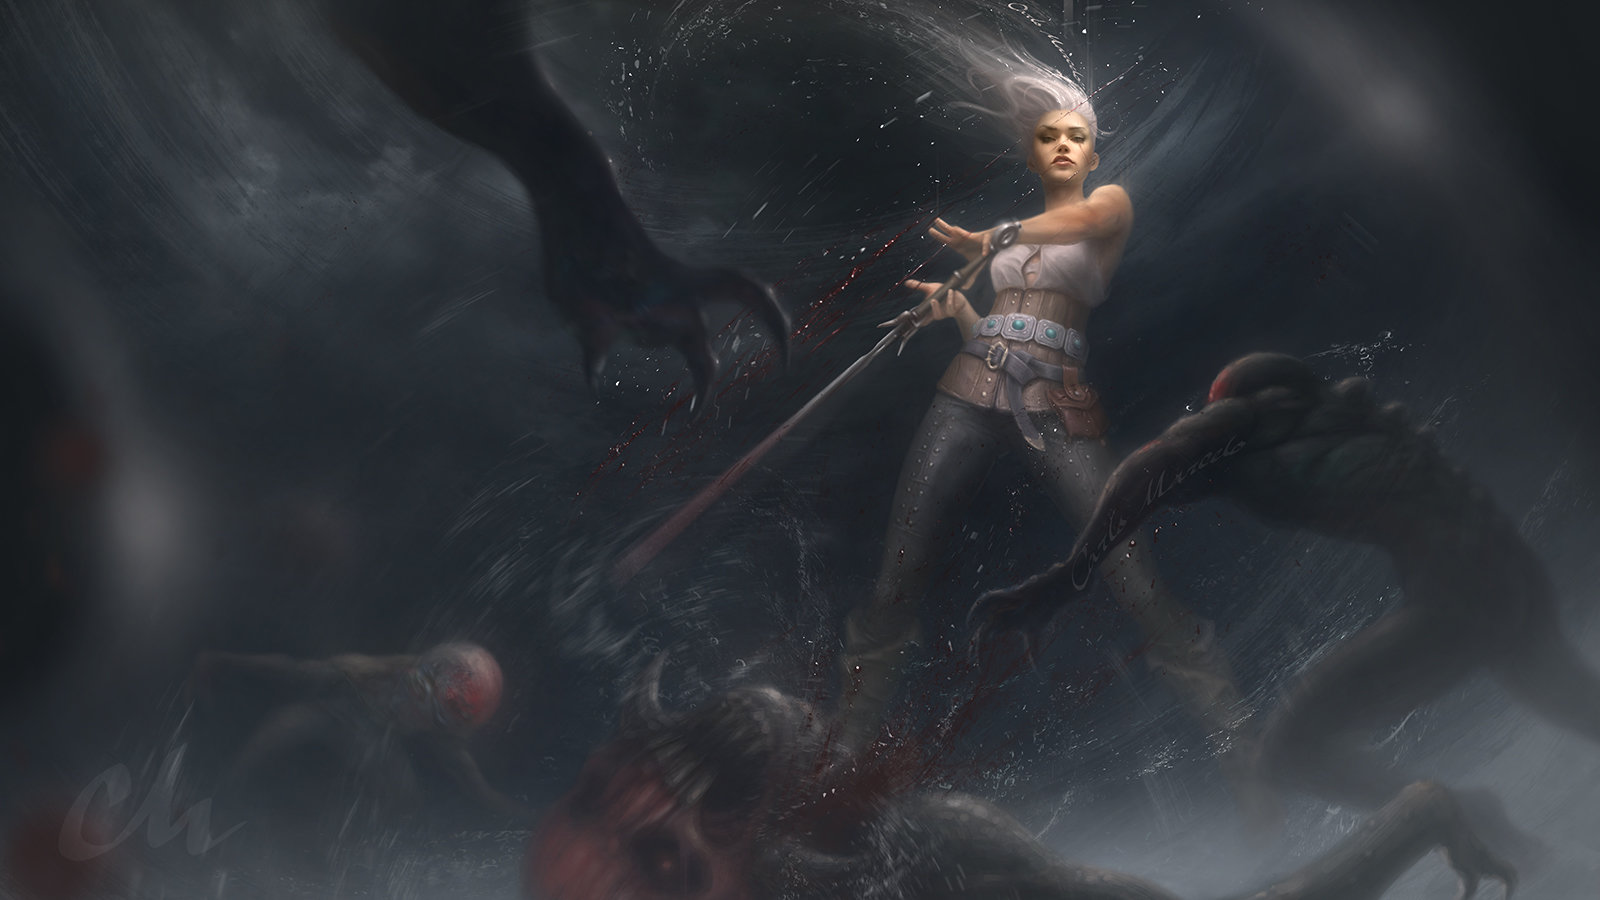 The Witcher 3 concept art picture фан цири